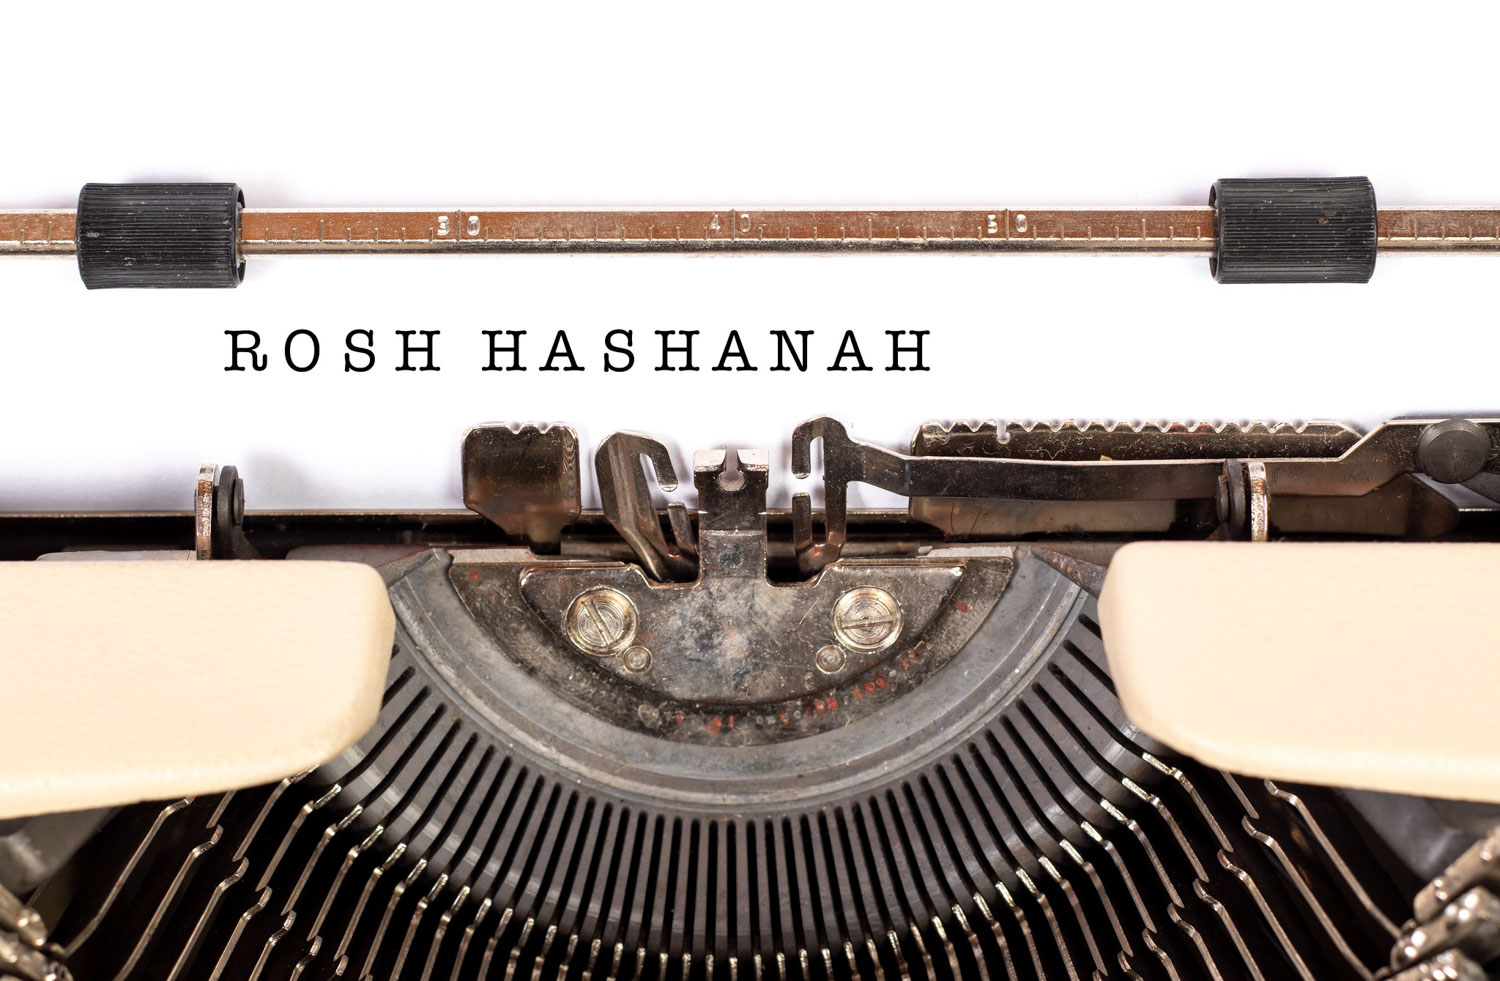 Typewriter with rosh hashanah typed out